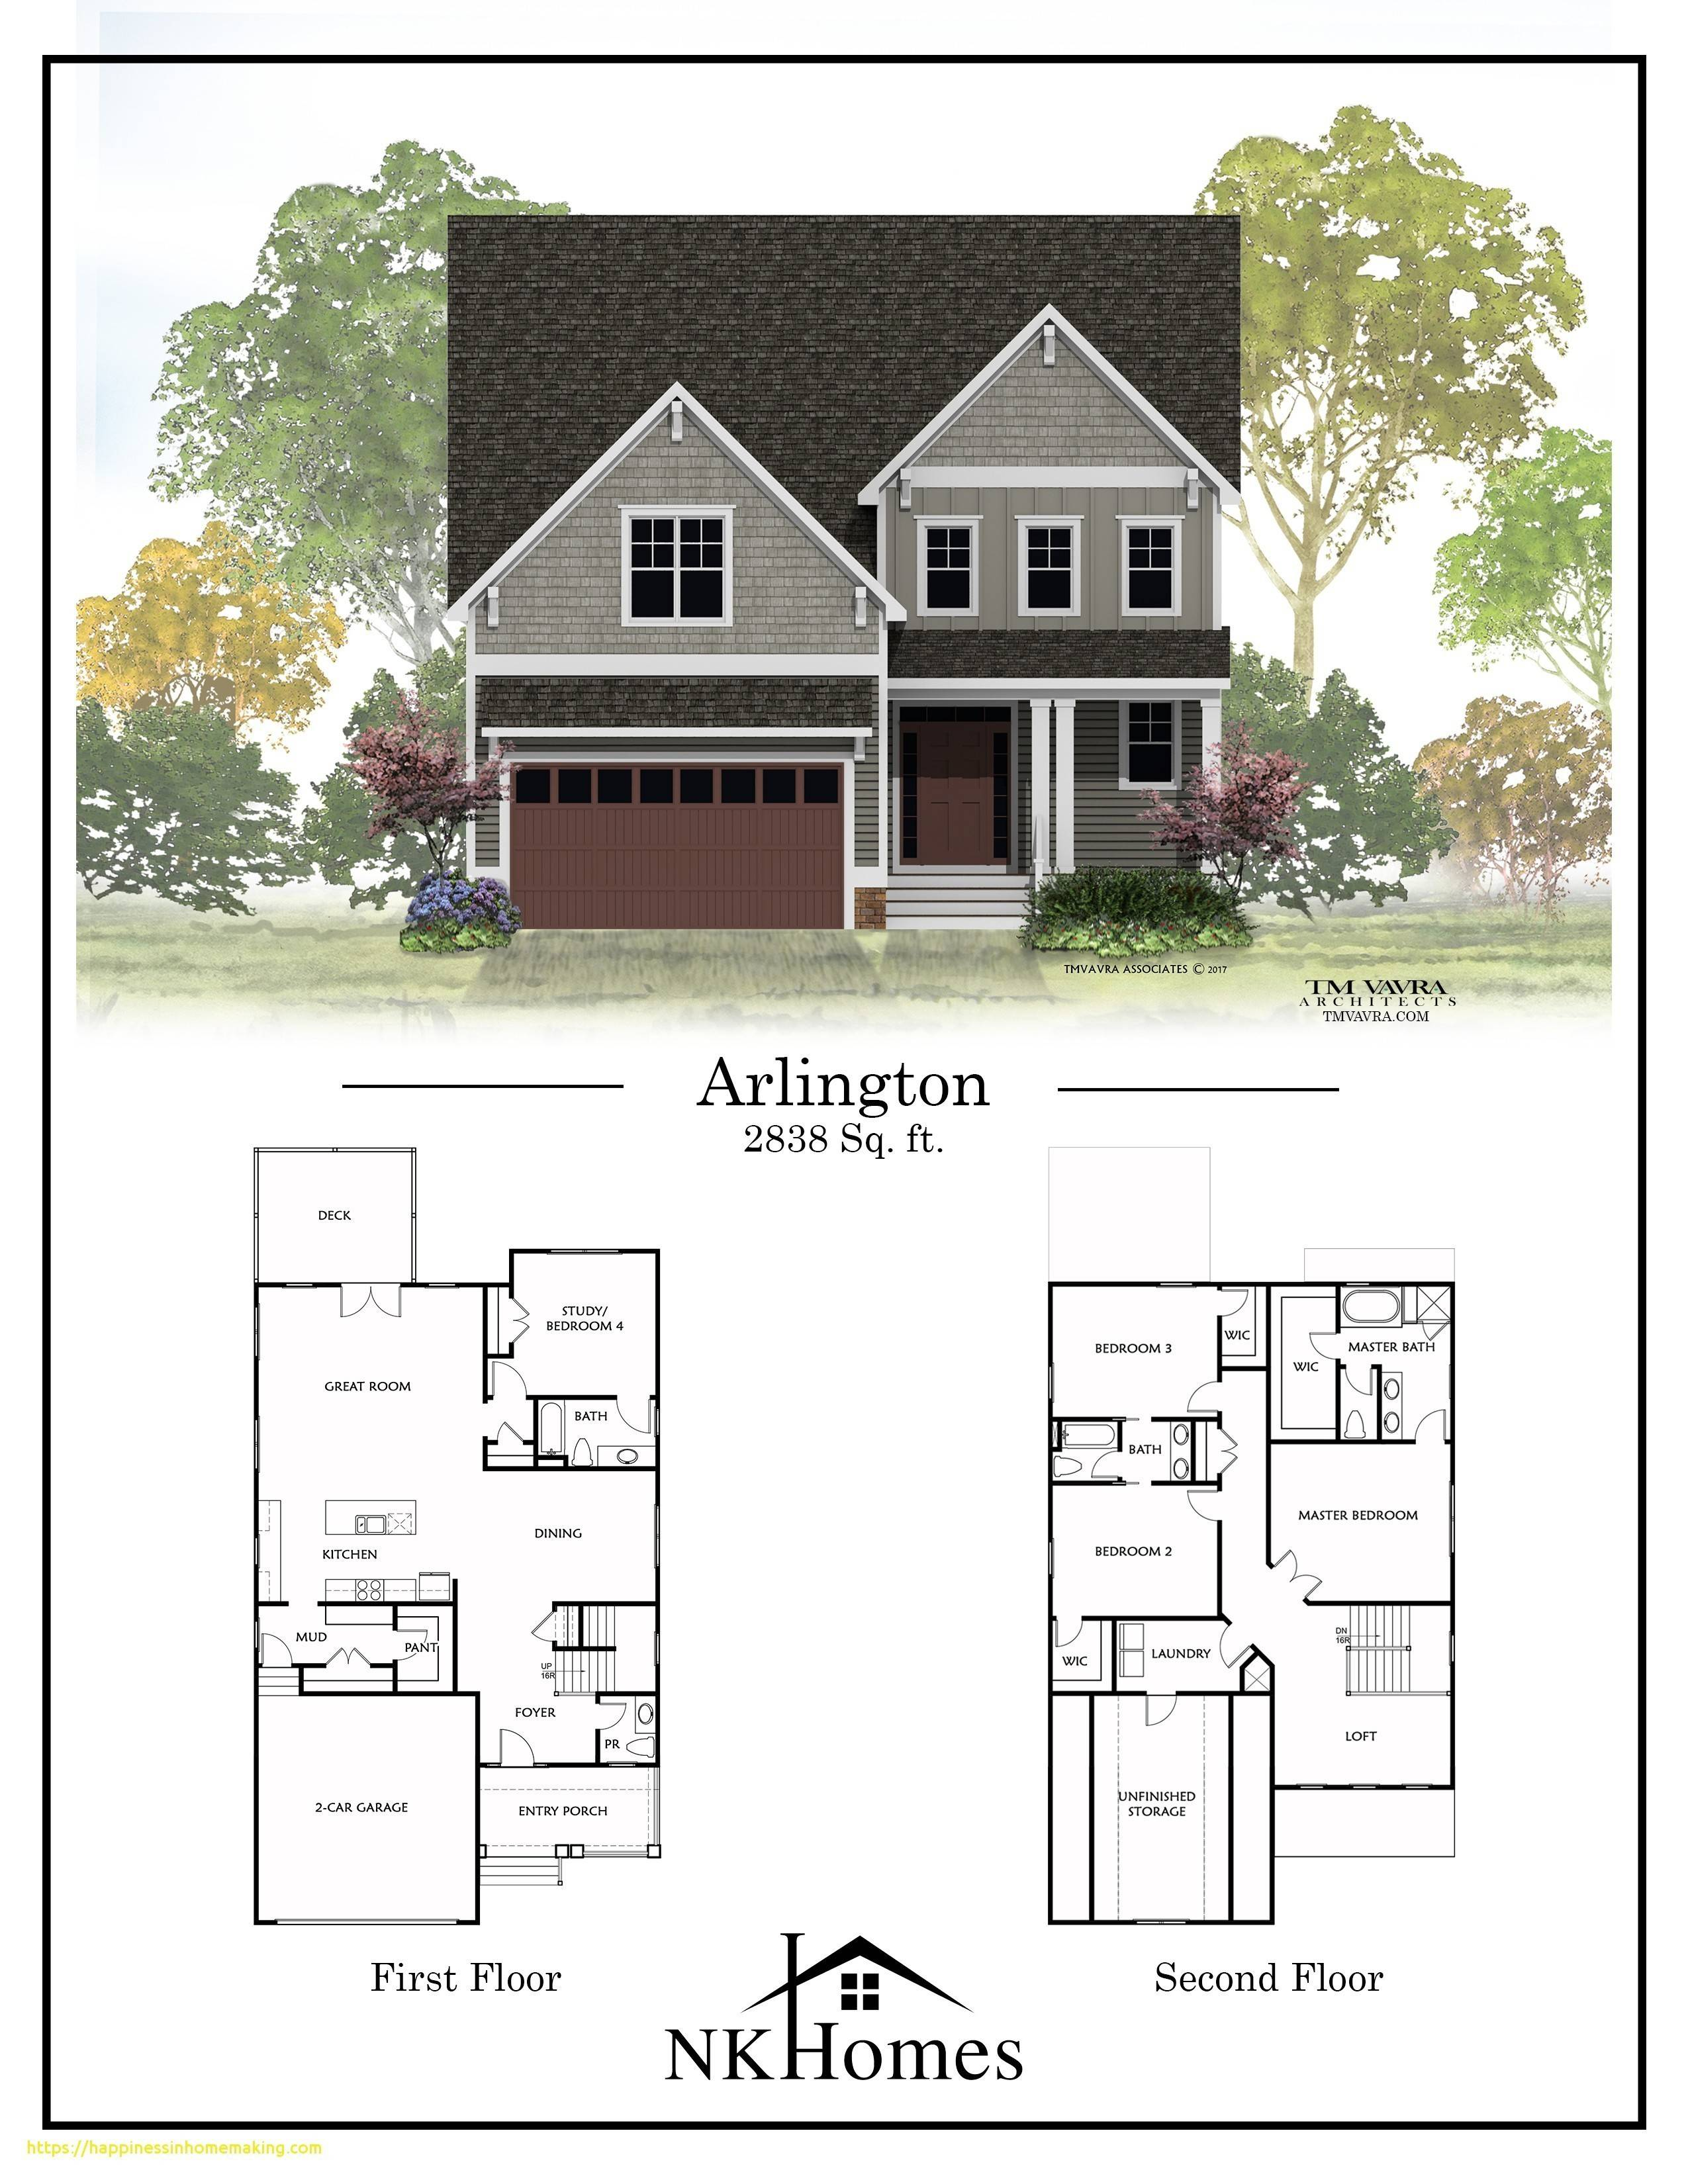 mediterranean style house plan best of bungalow home plans inspirational small house plans fresh design of mediterranean style house plan